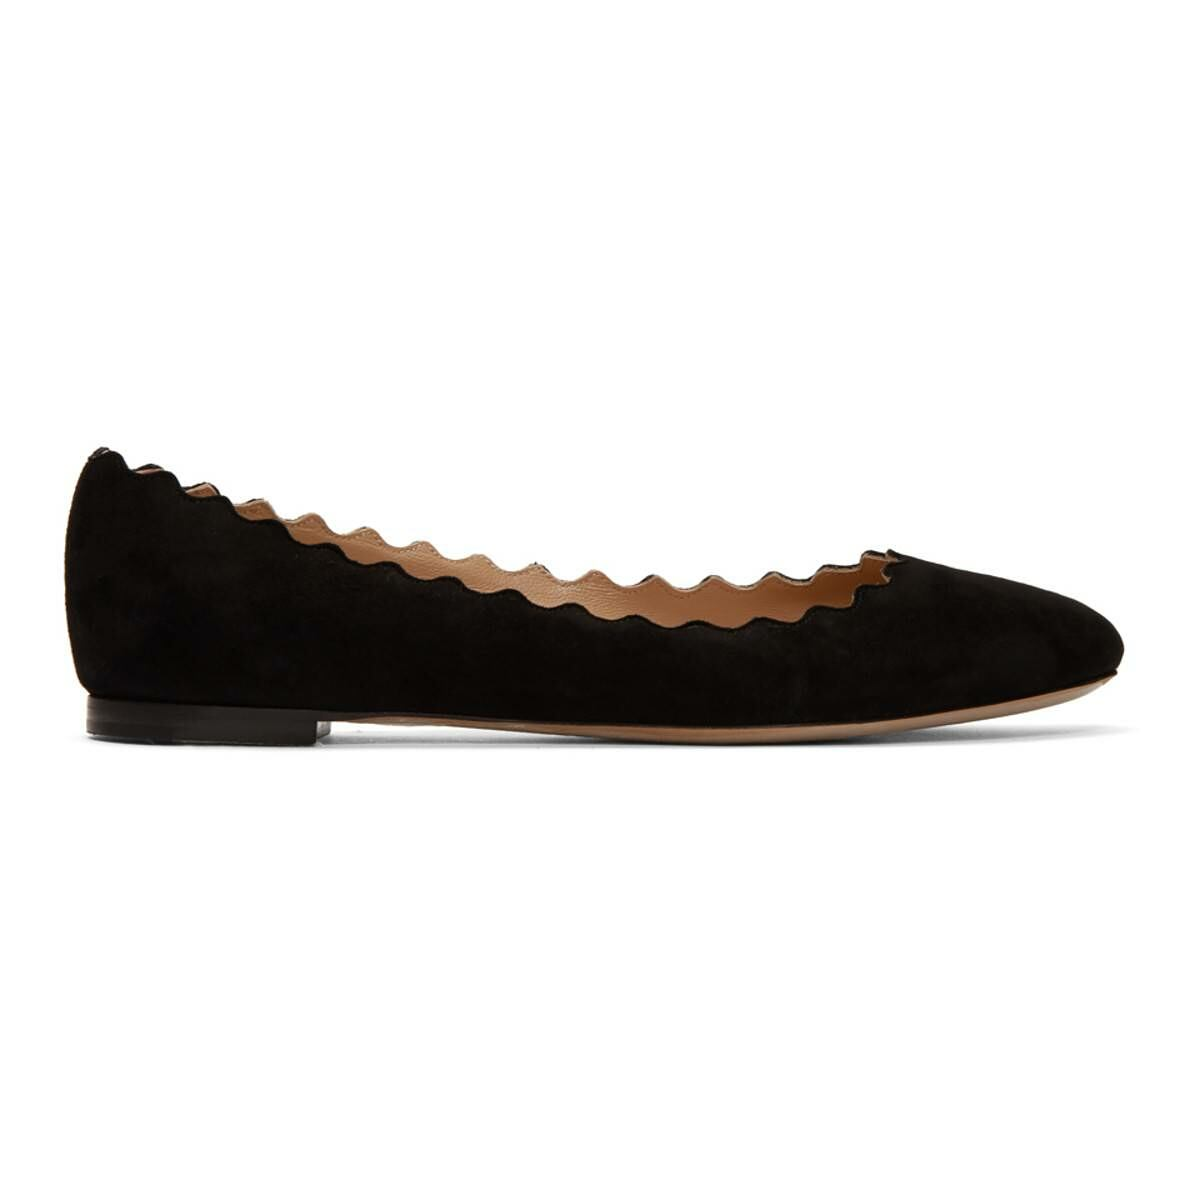 Chloe Black Suede Lauren Ballerina Flats Ssense USA WOMEN Women SHOES Womens BALLERINAS